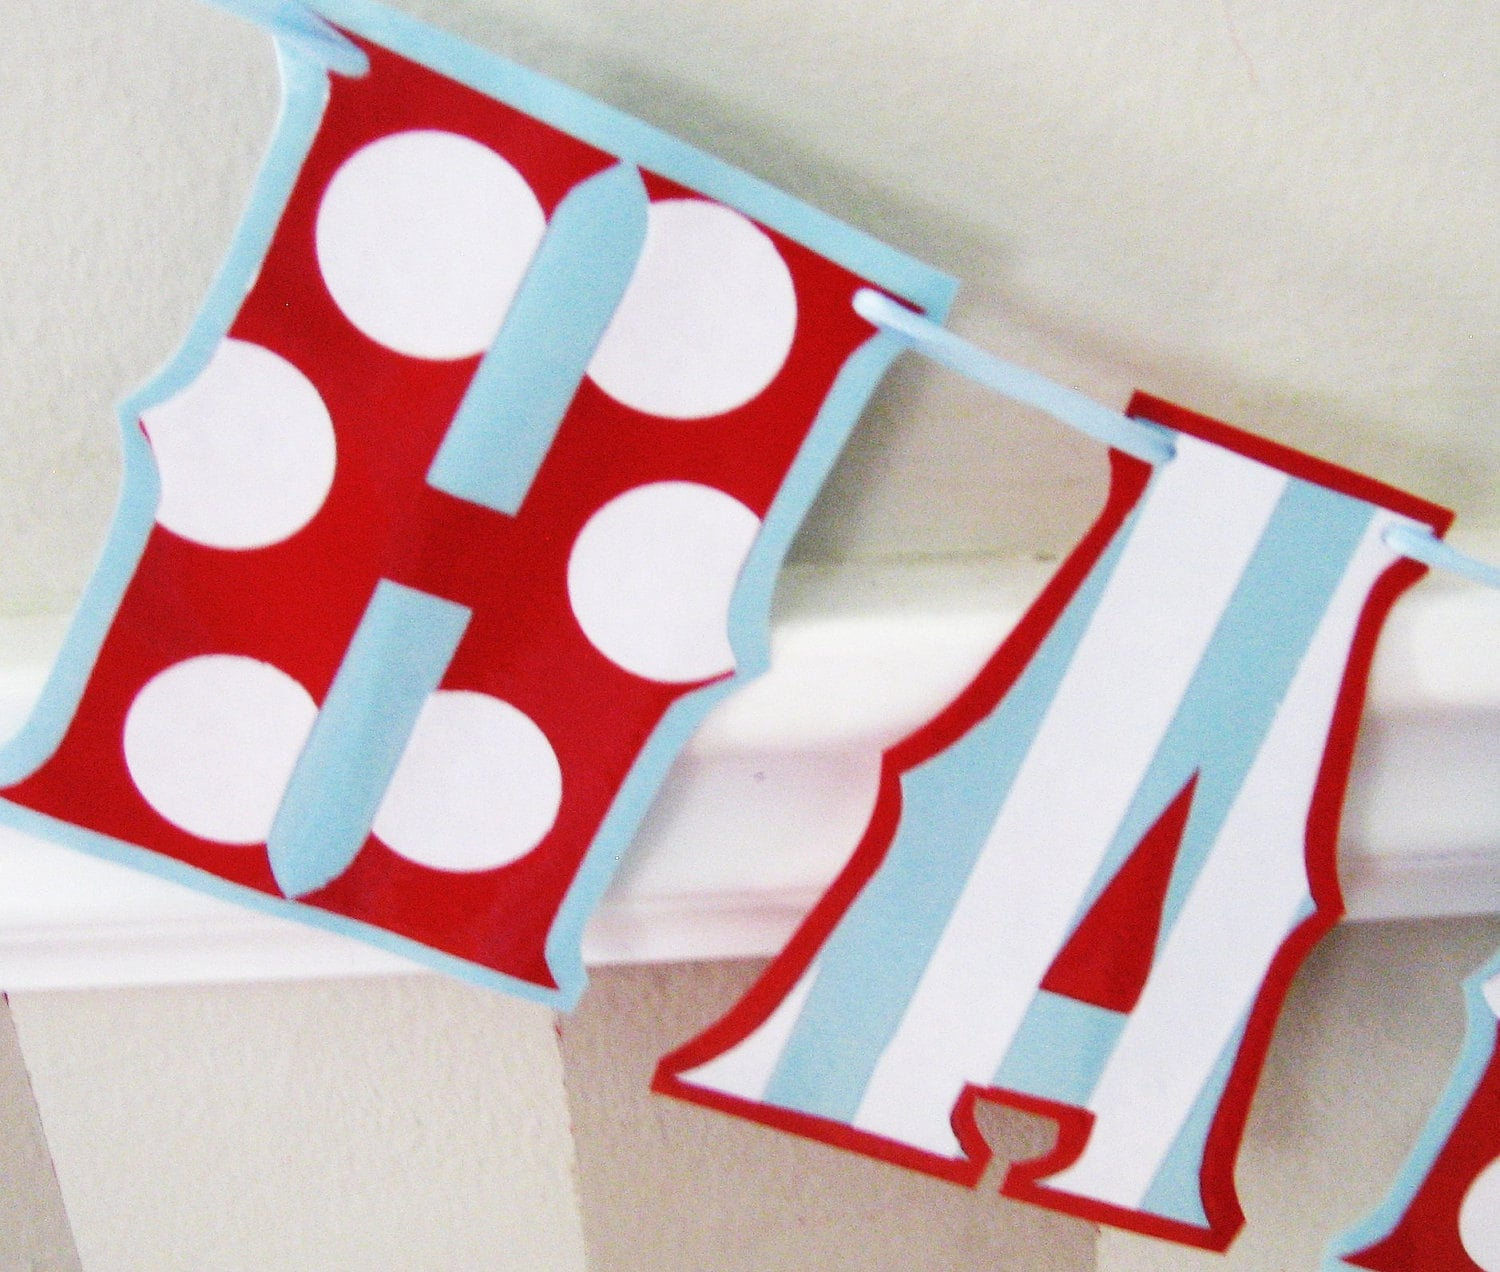 HAPpY BiRTHDAY Banner Red White And Baby Blue STRiPES By